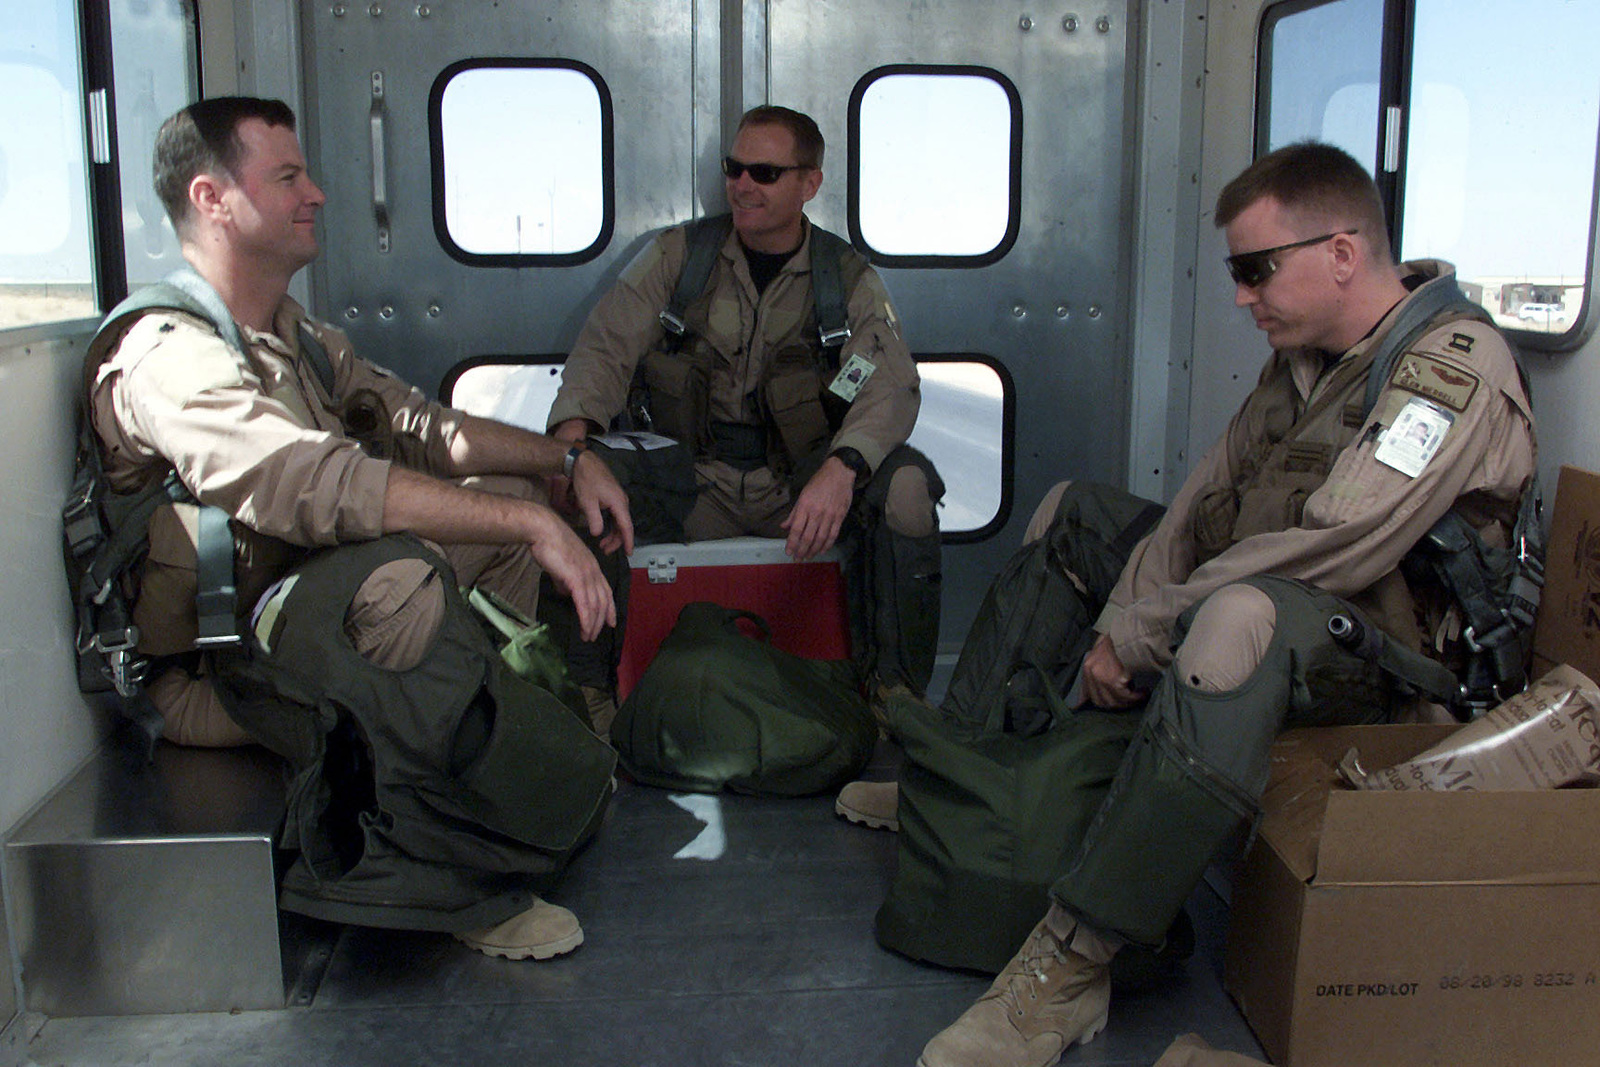 US Air Force F-15 Eagle aircraft pilots from the 122nd Fighter Squadron, Louisiana Air National Guard, sit on a crew bus while being taken out to their aircraft at Prince Sultan Air Base, Saudi Arabia. The pilots are part of the coalition forces of the 363rd Air Expeditionary Wing that enforces the no-fly and no-drive zone in Southern Iraq to protect and defend against Iraqi aggression in support of Operation SOUTHERN WATCH